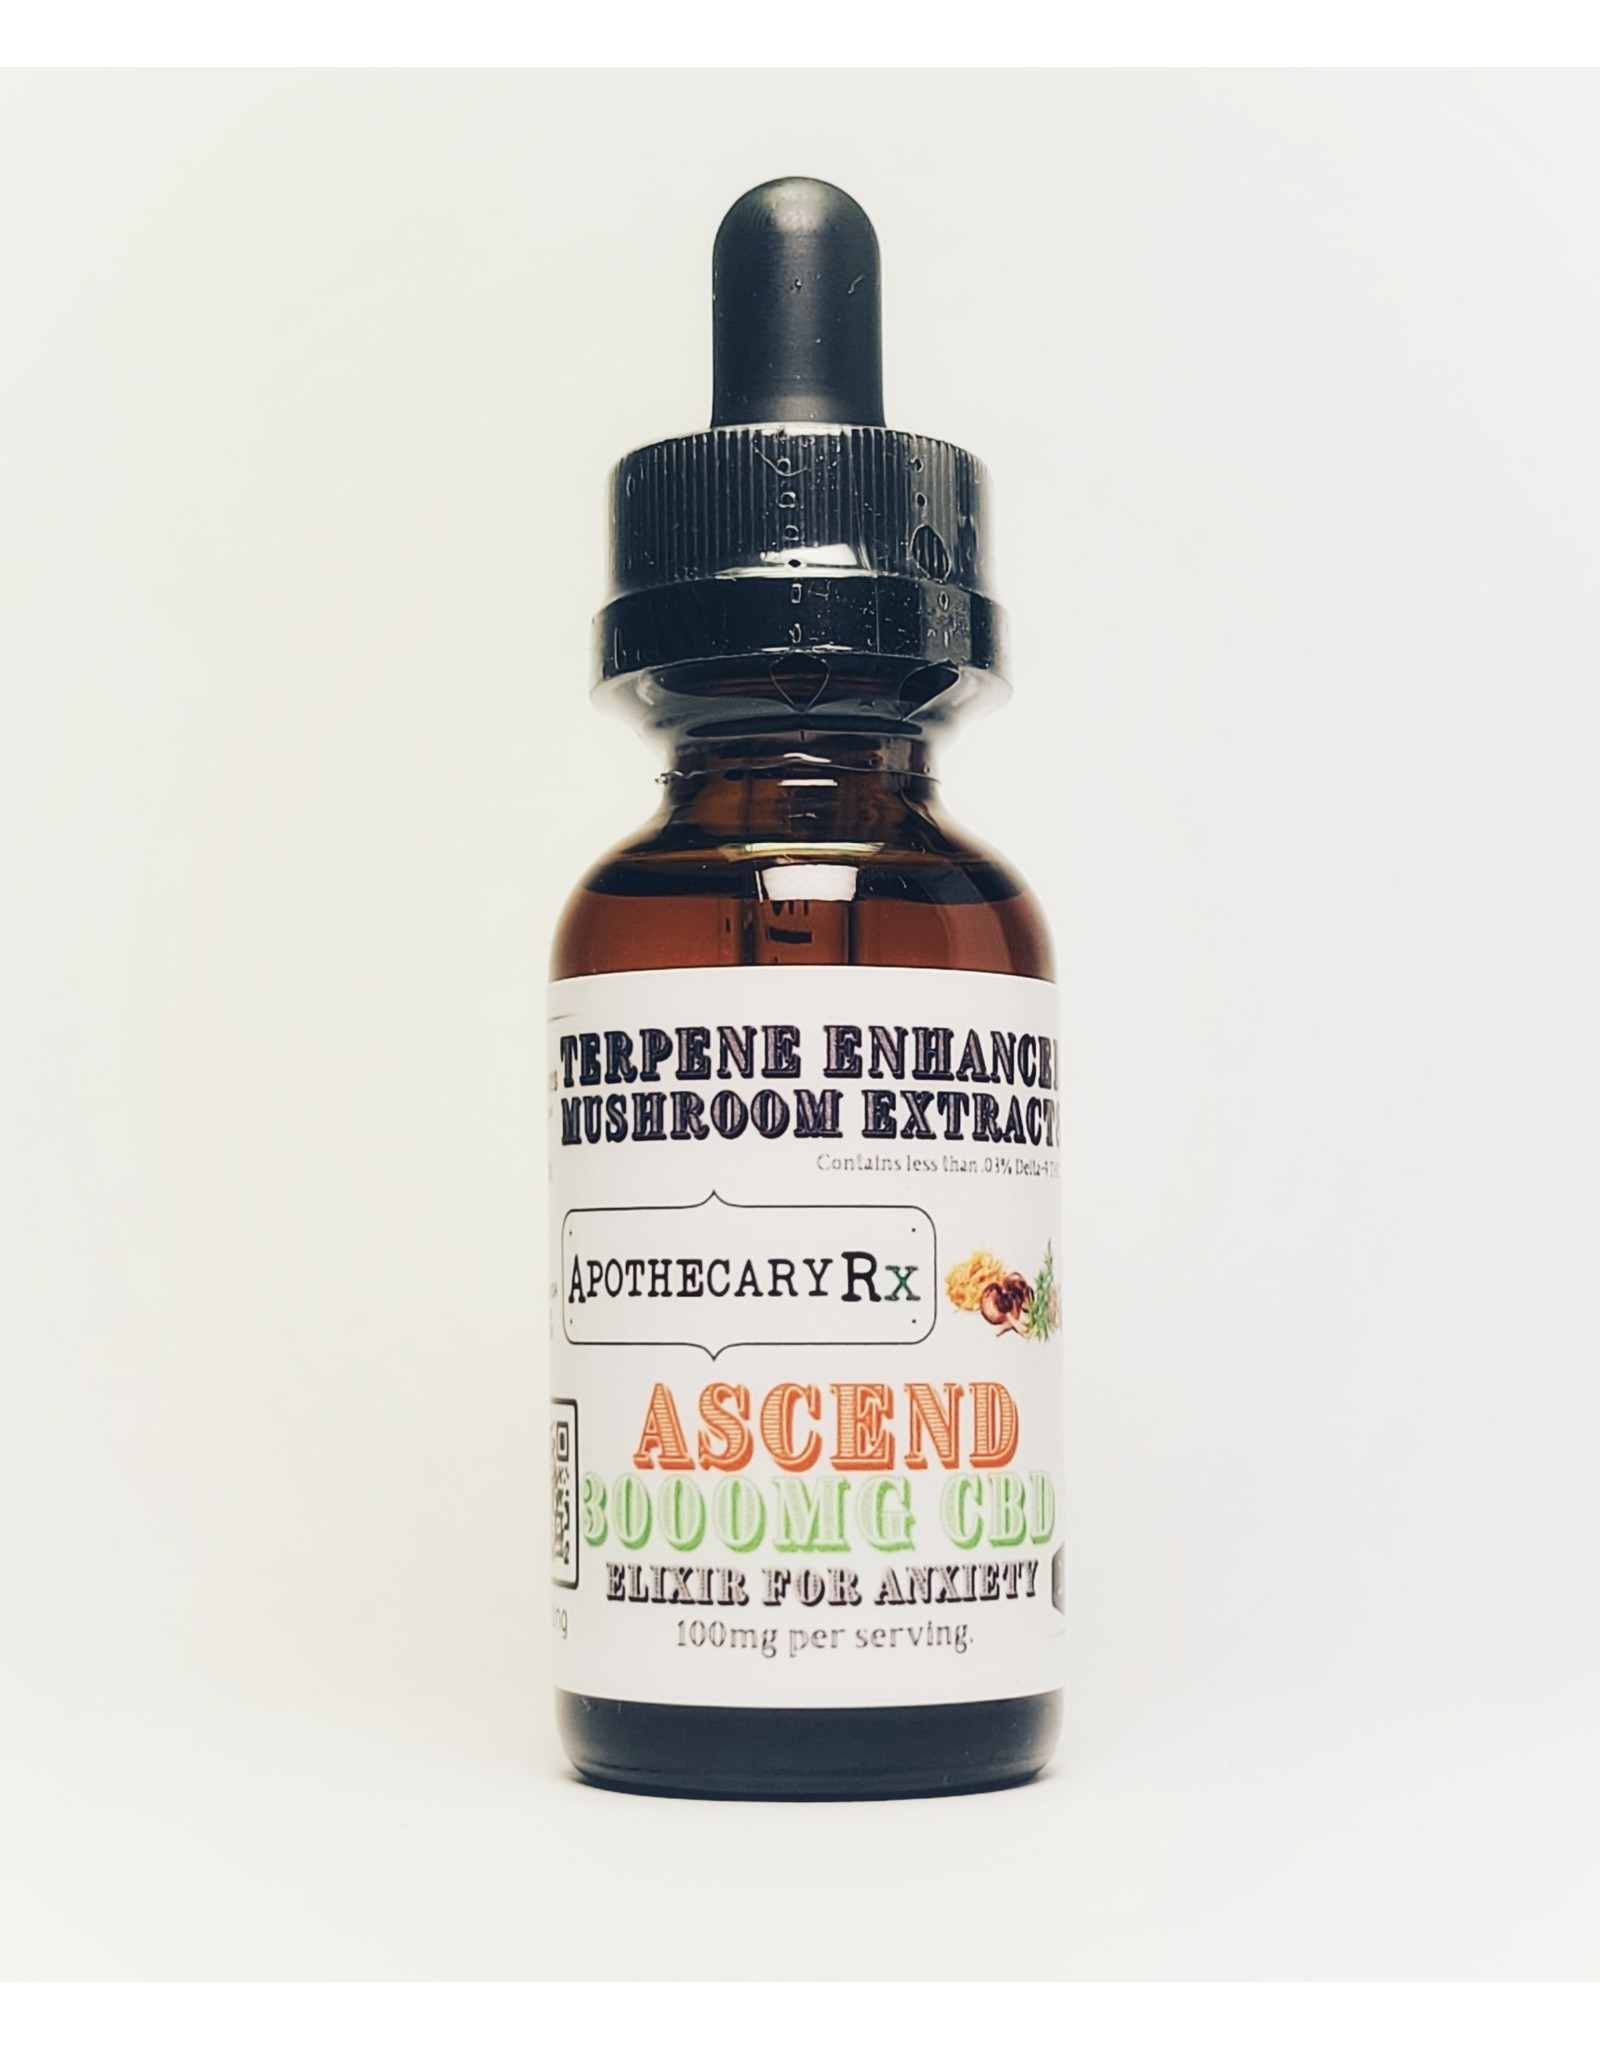 Apothecary Rx Apothecary Rx ASCEND Elixir for Anxiety 3000mg Full Spectrum